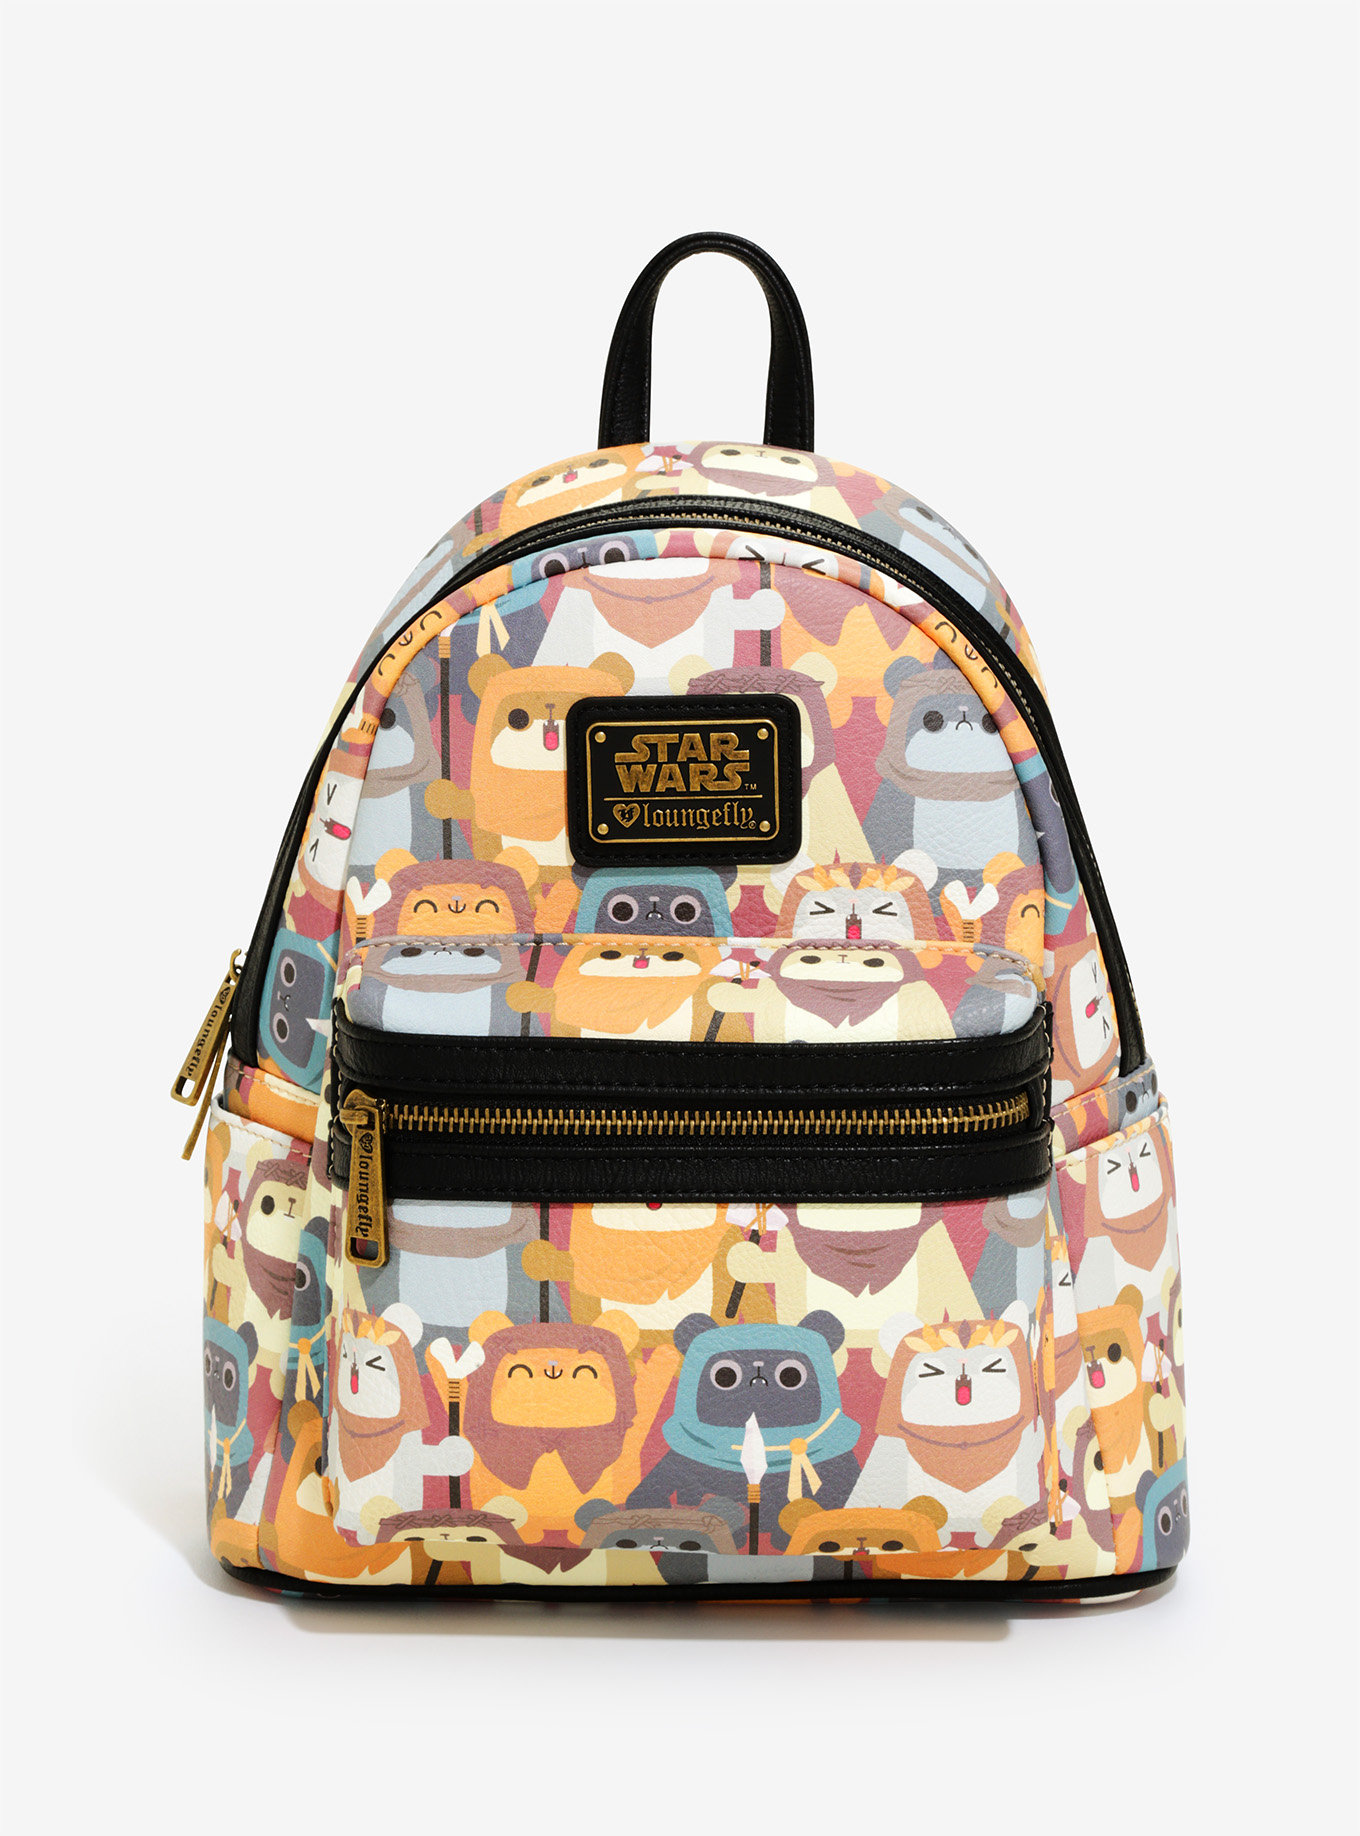 Loungefly Ewok Mini Backpack At Box Lunch The Kessel Runway